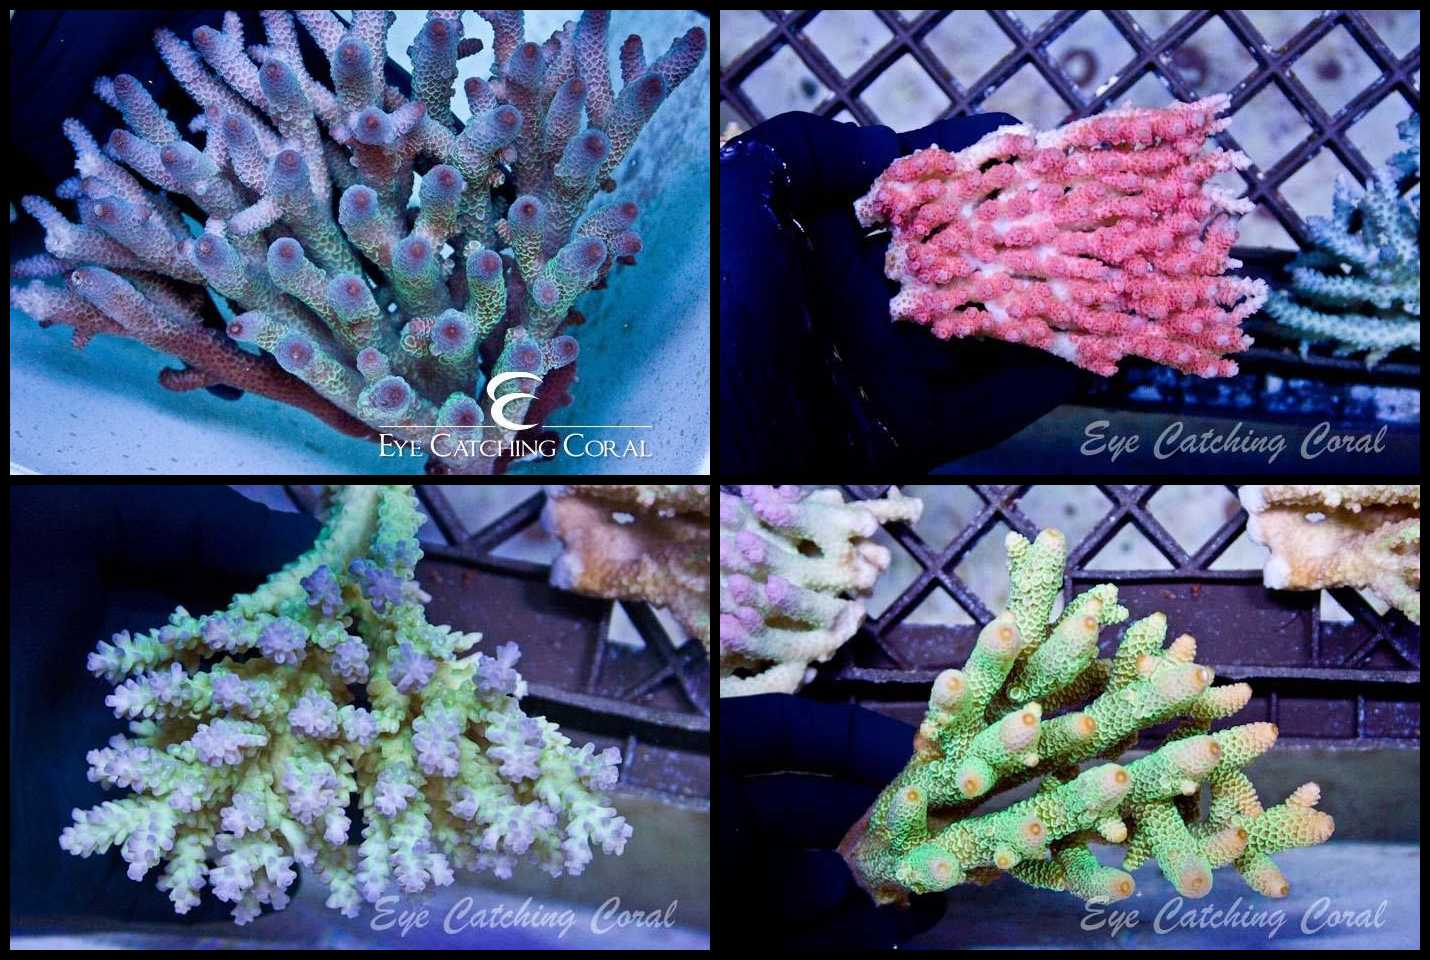 Acropora - Priced by size and color  - Acropora sp.